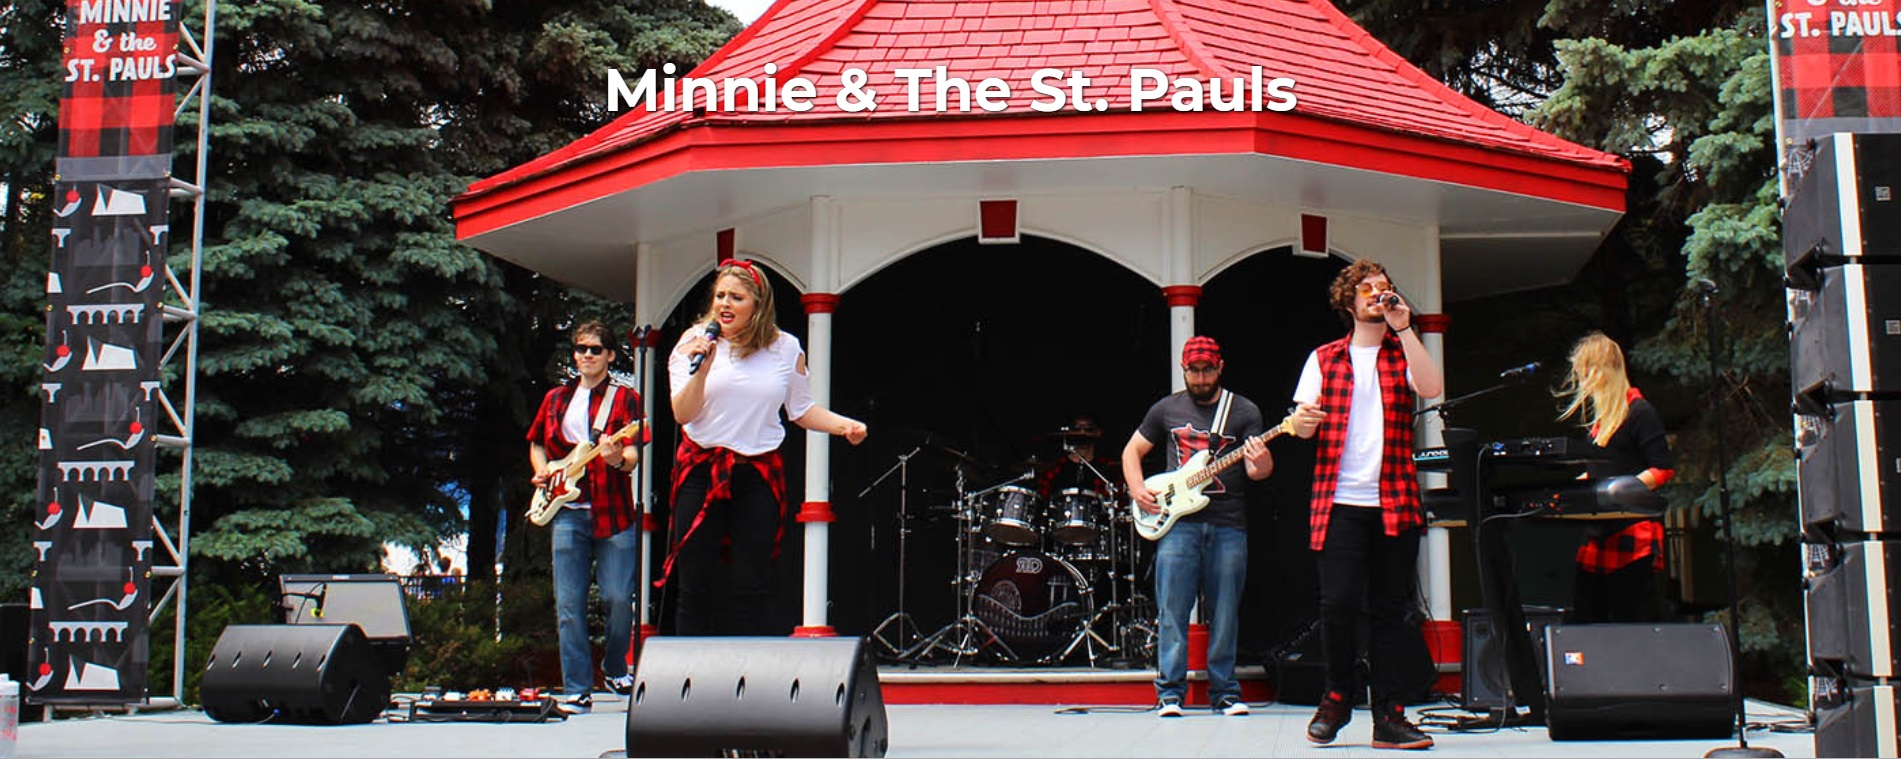 Minnie & The St. Pauls